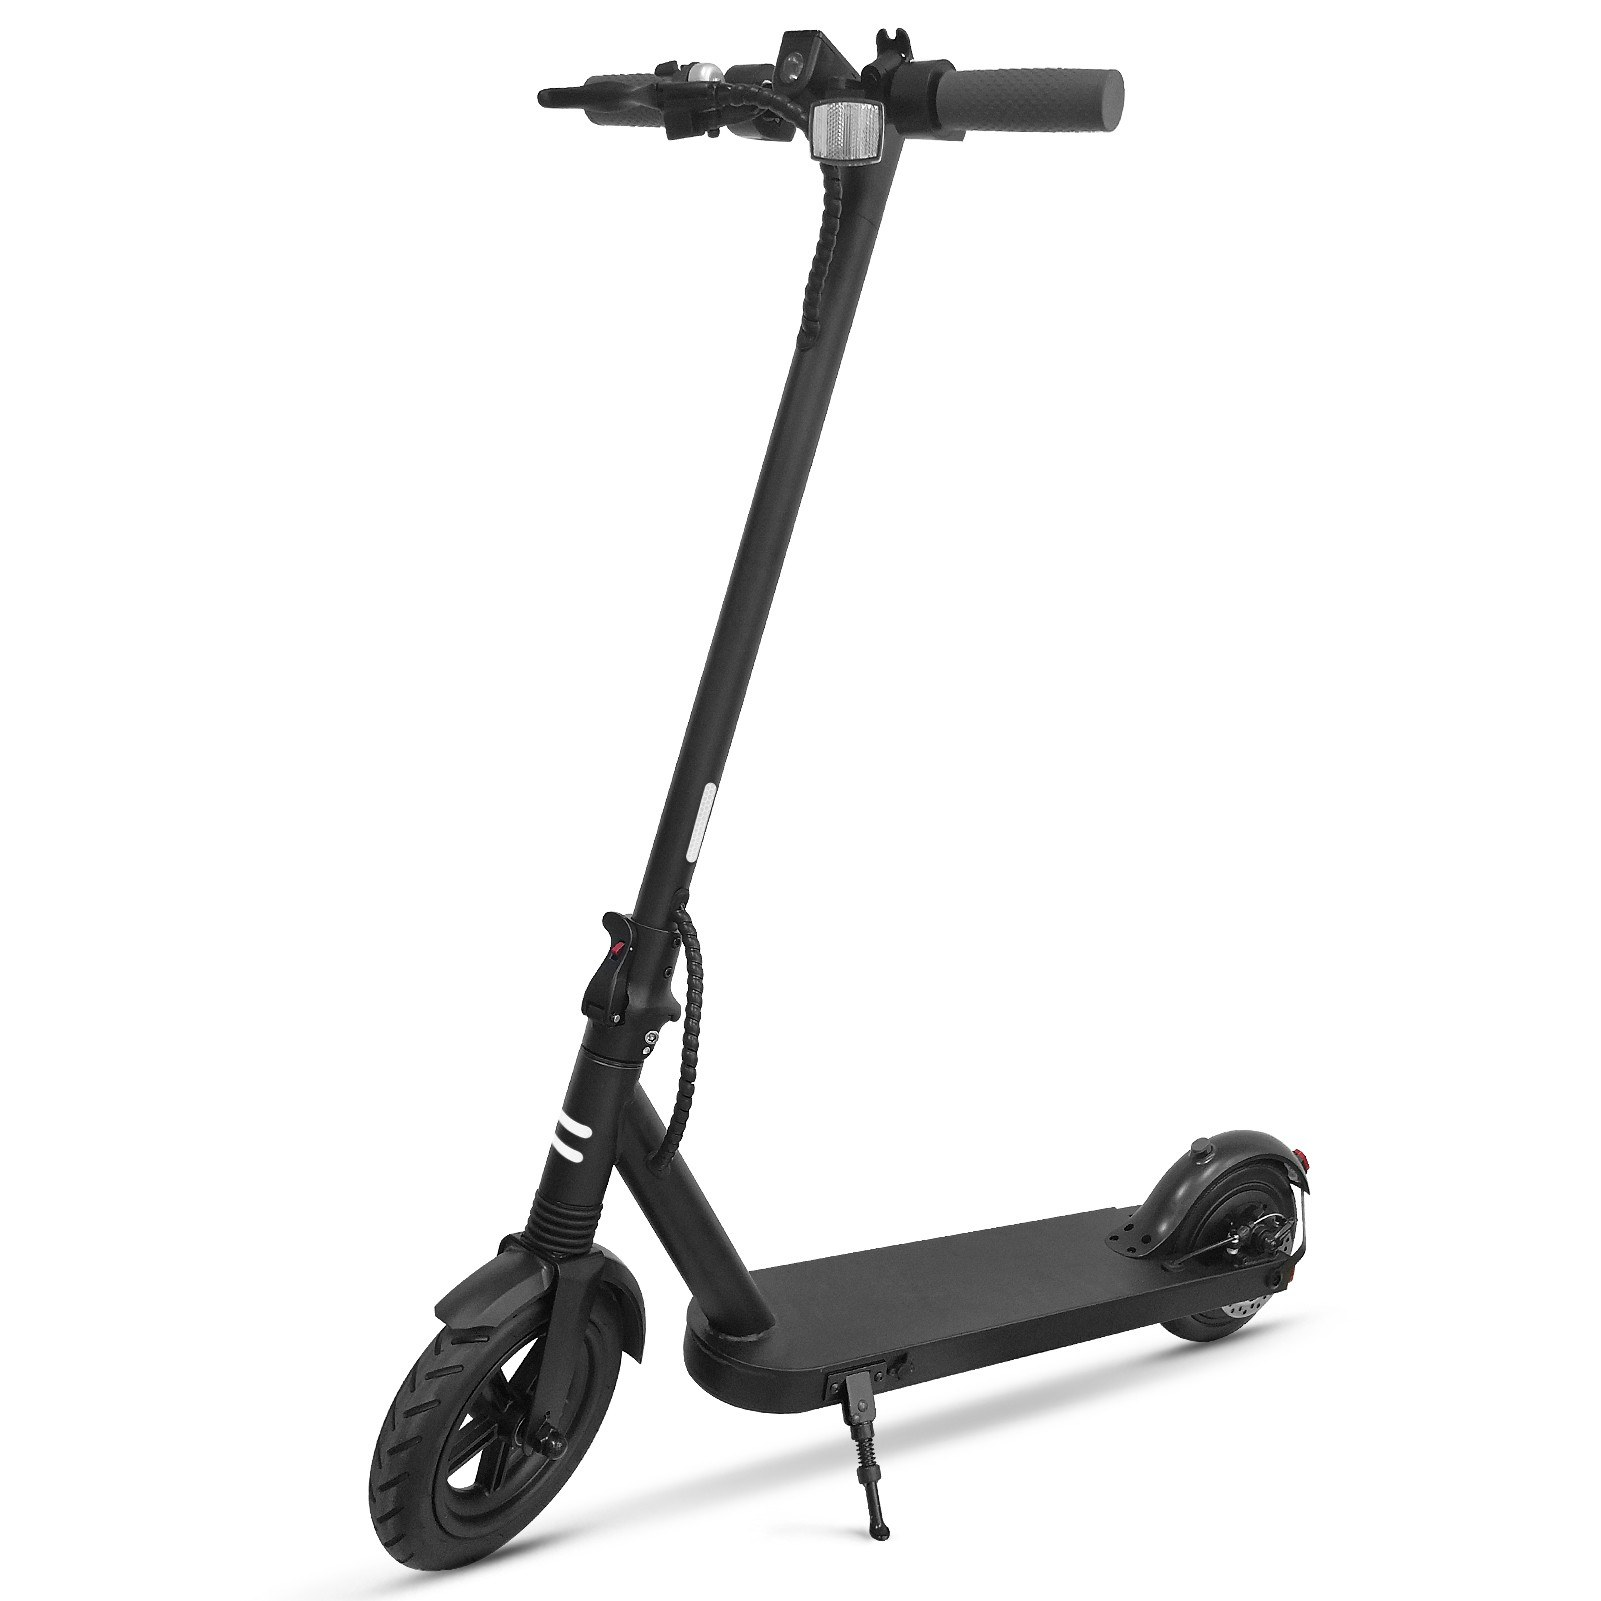 cafago.com - 42% OFF ES-L8 350W 8.5 Inch Folding Electric Scooter with 7.5Ah Battery,free shipping+$268.49